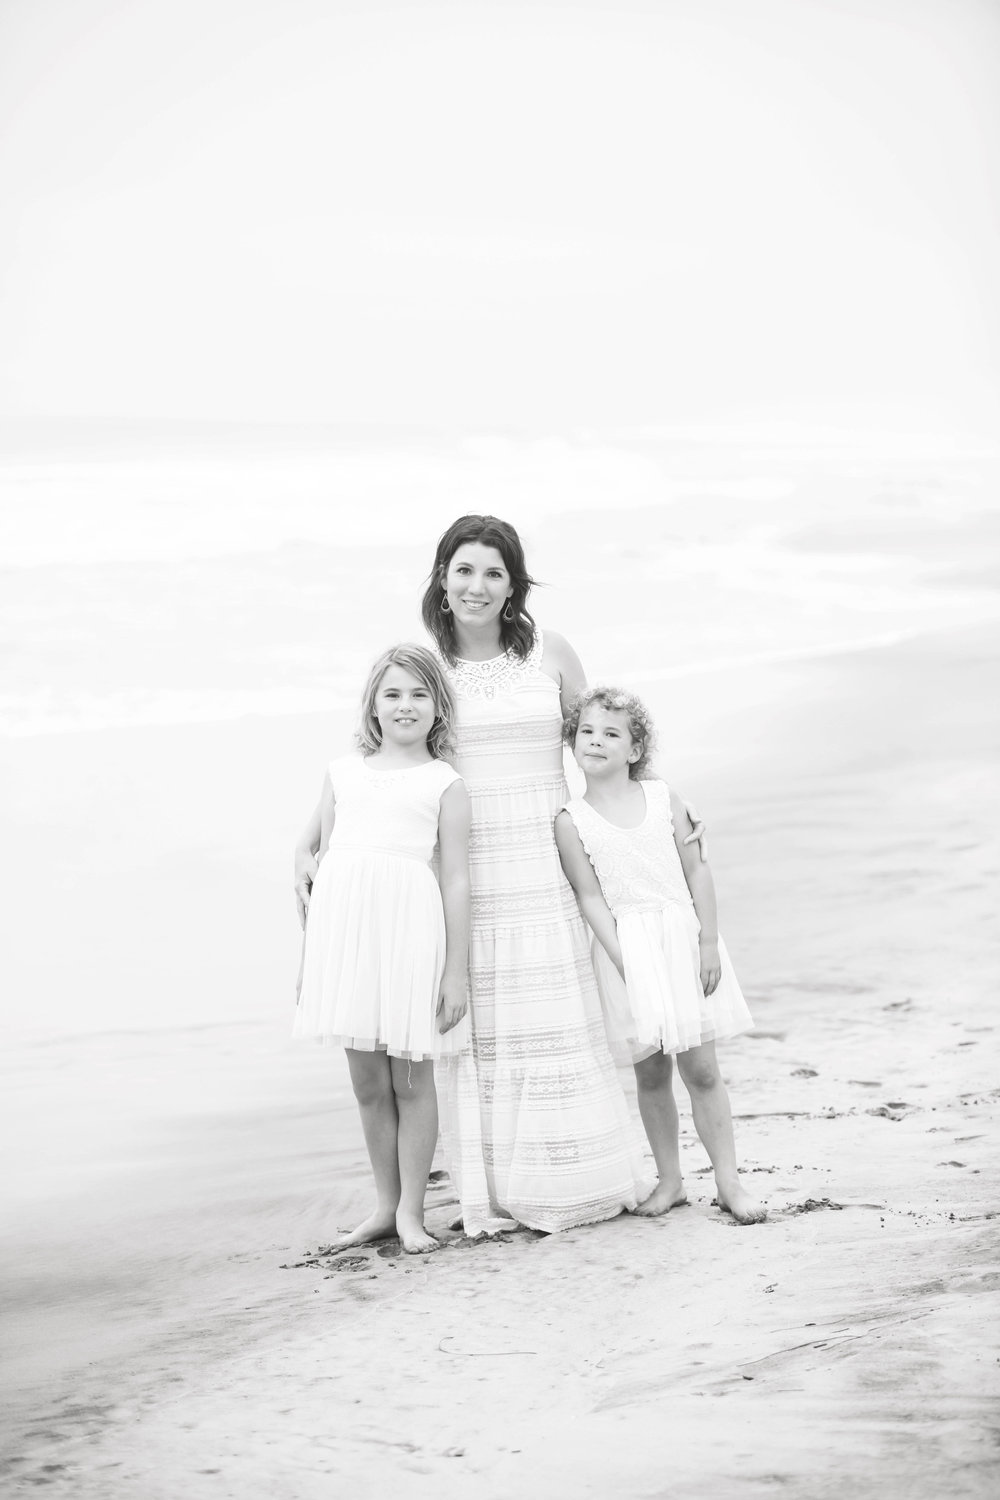 Marble_Falls_Family_Photographer_Jenna_Petty_07.jpg